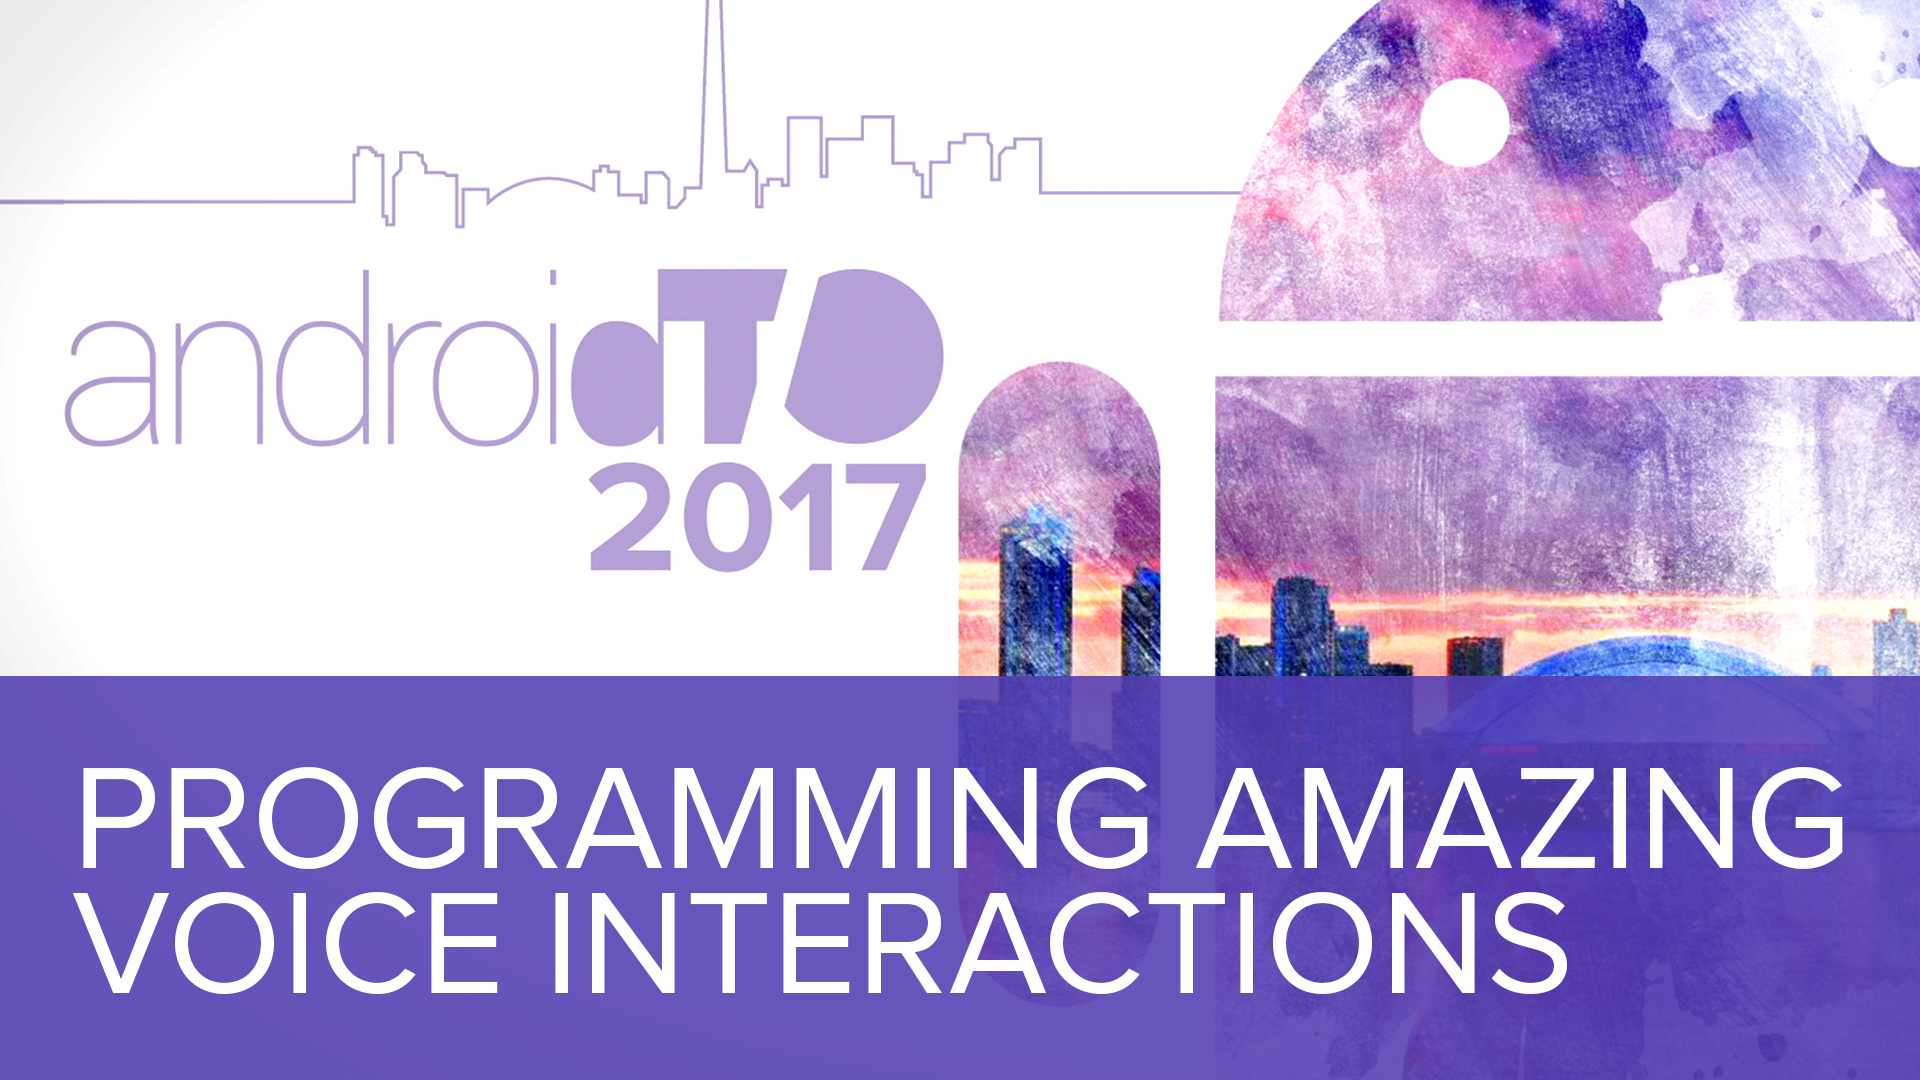 Programming Amazing Voice Interactions - Mark Scheel